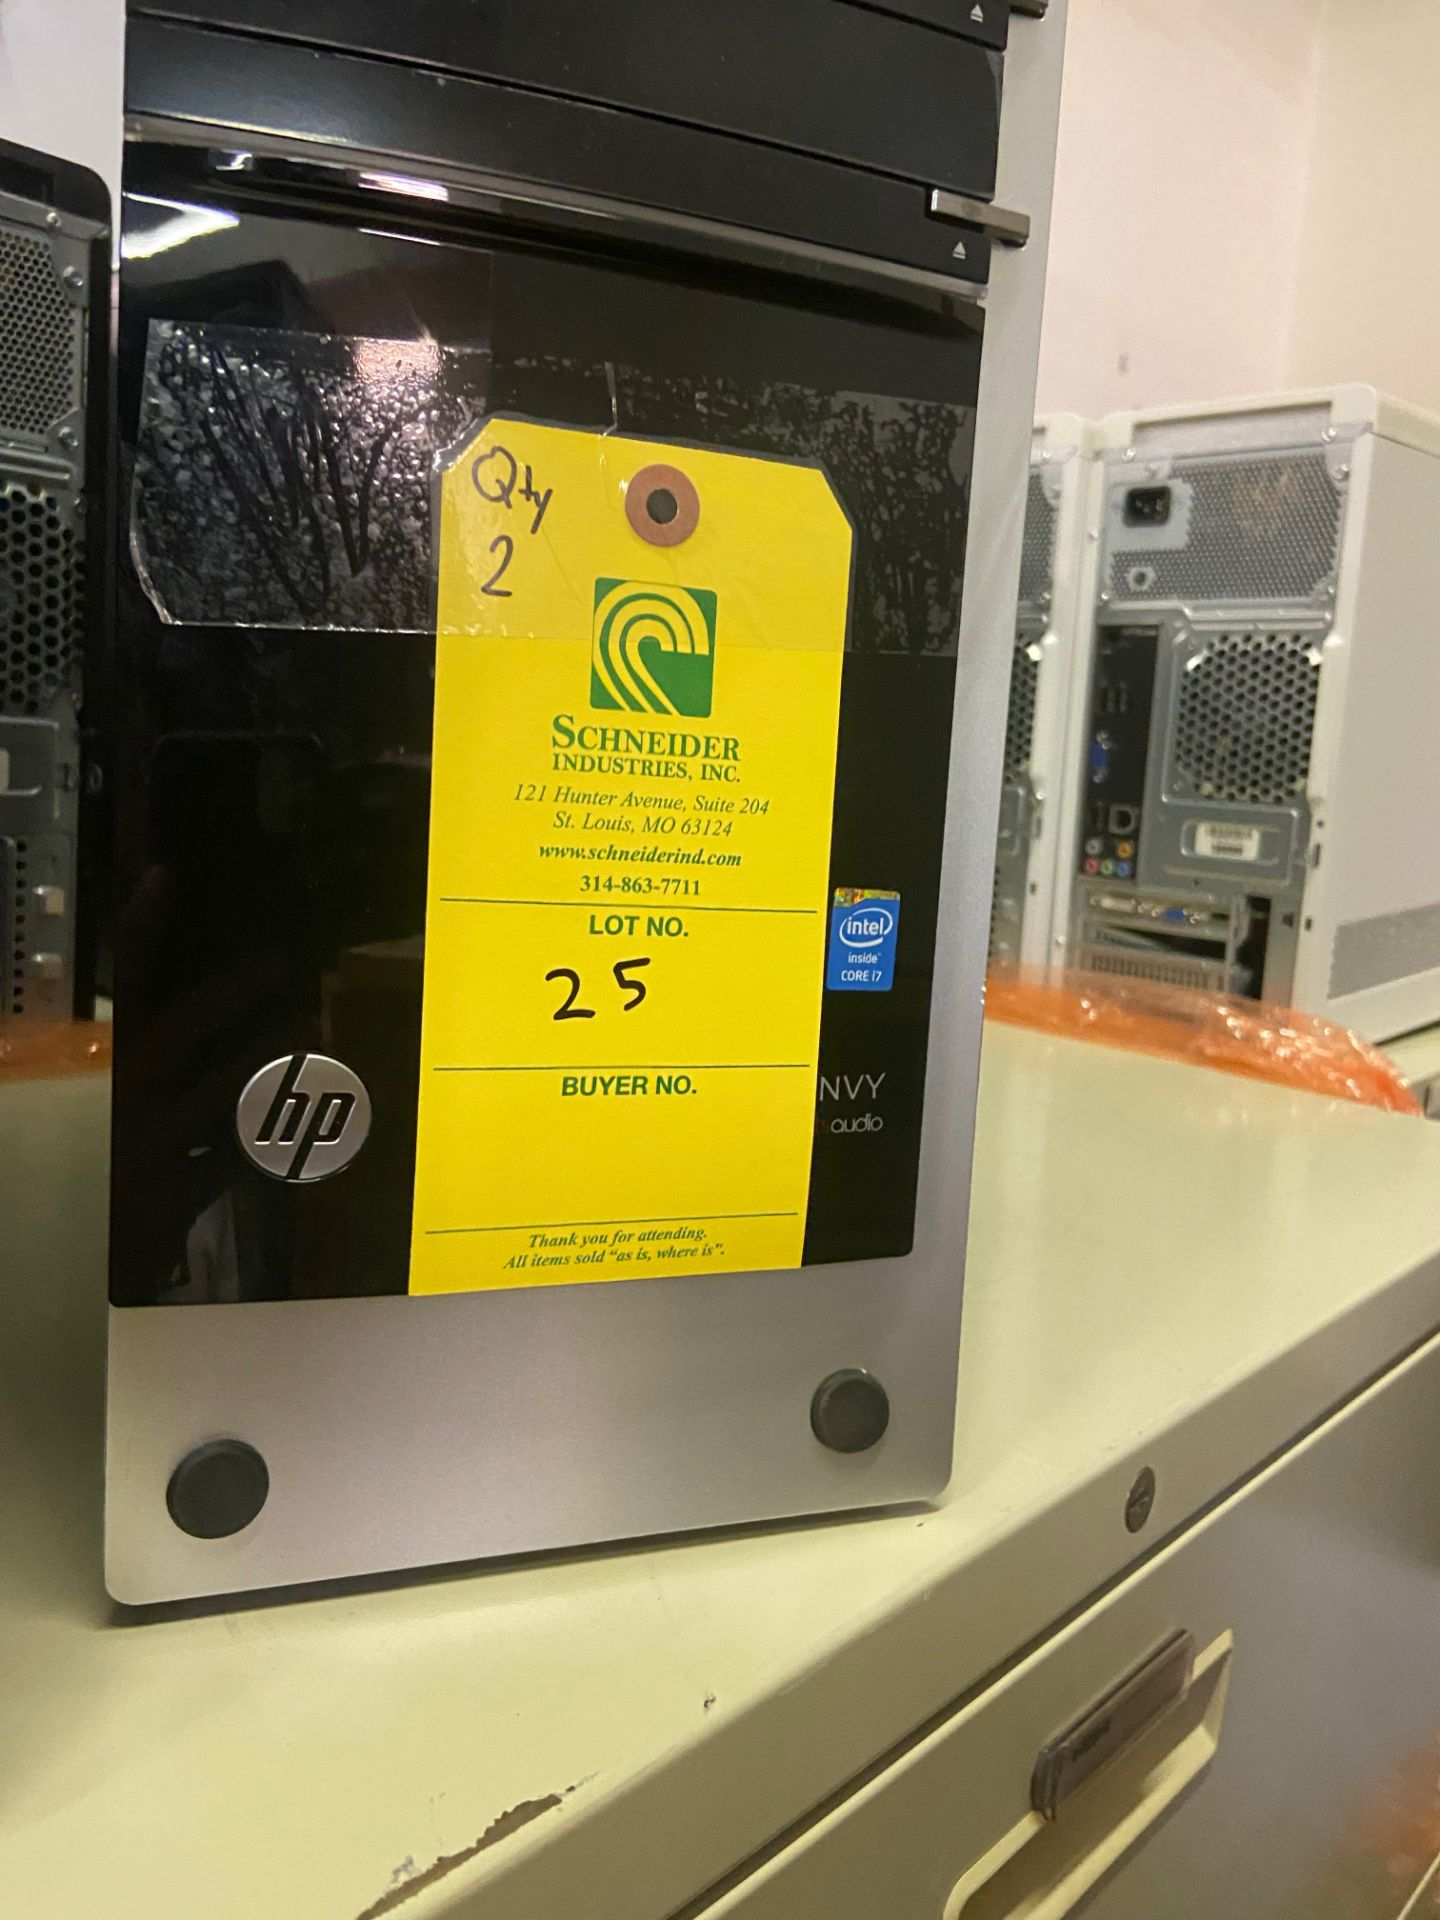 Dell Envy Desktop Computers, Qty 2, Intel i7 Processors, Loading/Removal Fee: $20 - Image 3 of 3